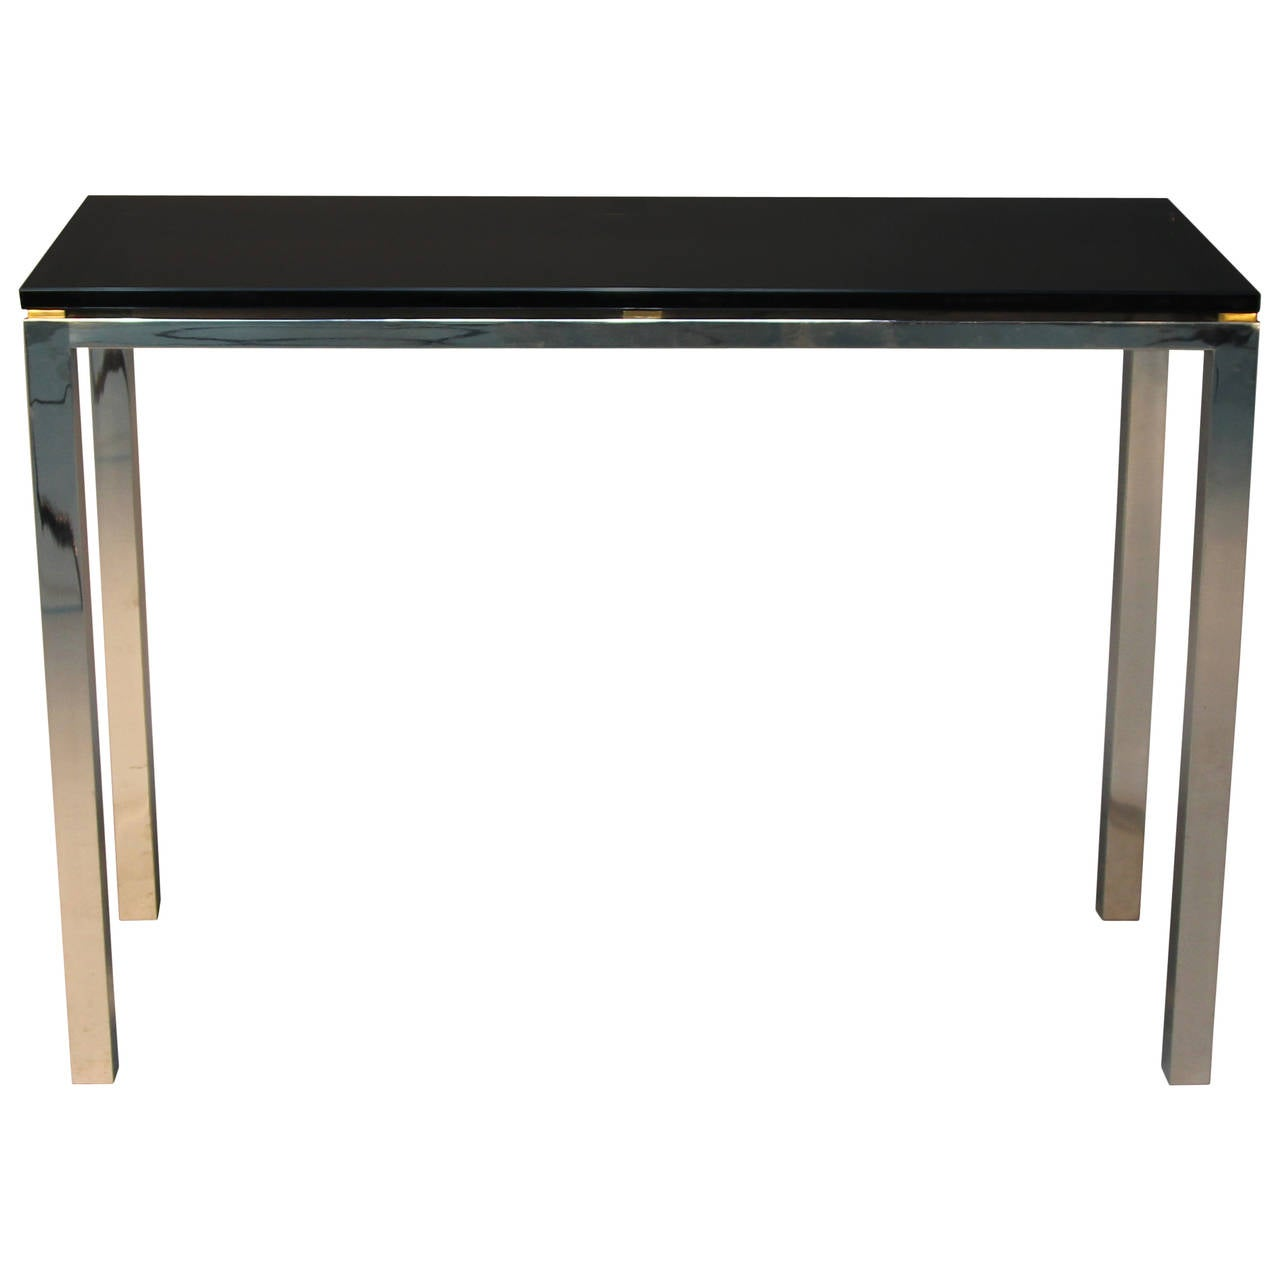 Chrome And Smoked Glass Console Table With Brass Accents